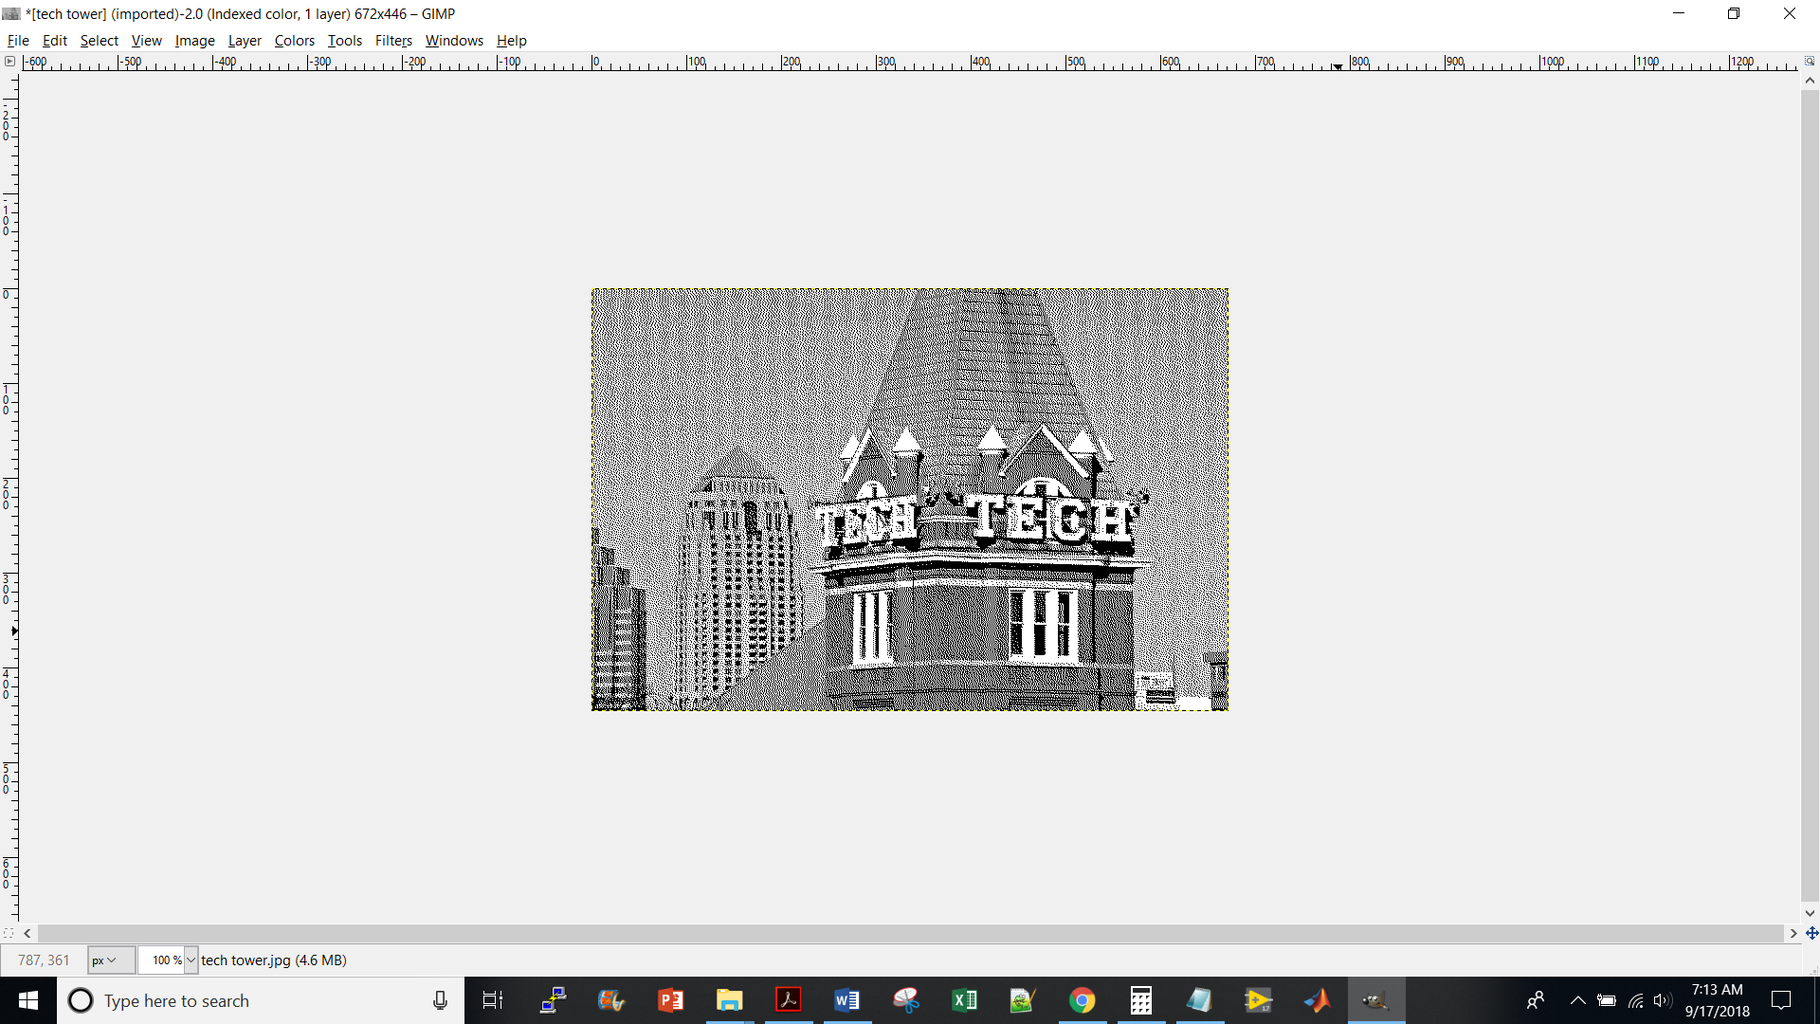 """Image --> Mode --> Indexed --> Then Check Off """"Use Black and White (1-bit) Palette"""" and in the Dithering Menu Choose """"Floyd-Steinburg (normal)"""""""